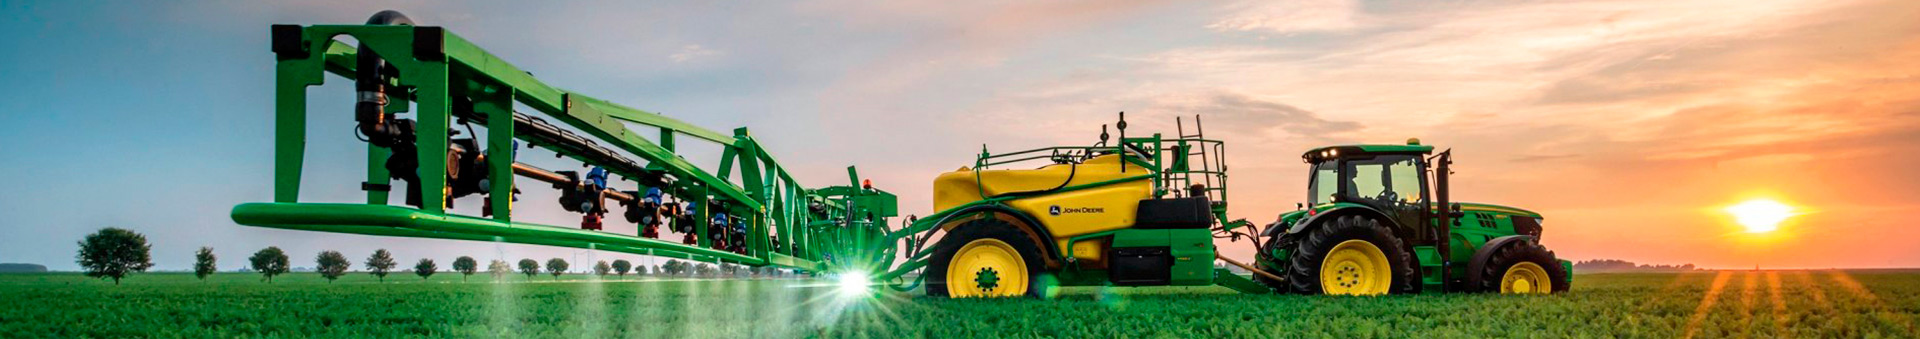 How to control the operation of agricultural machinery using GPS?